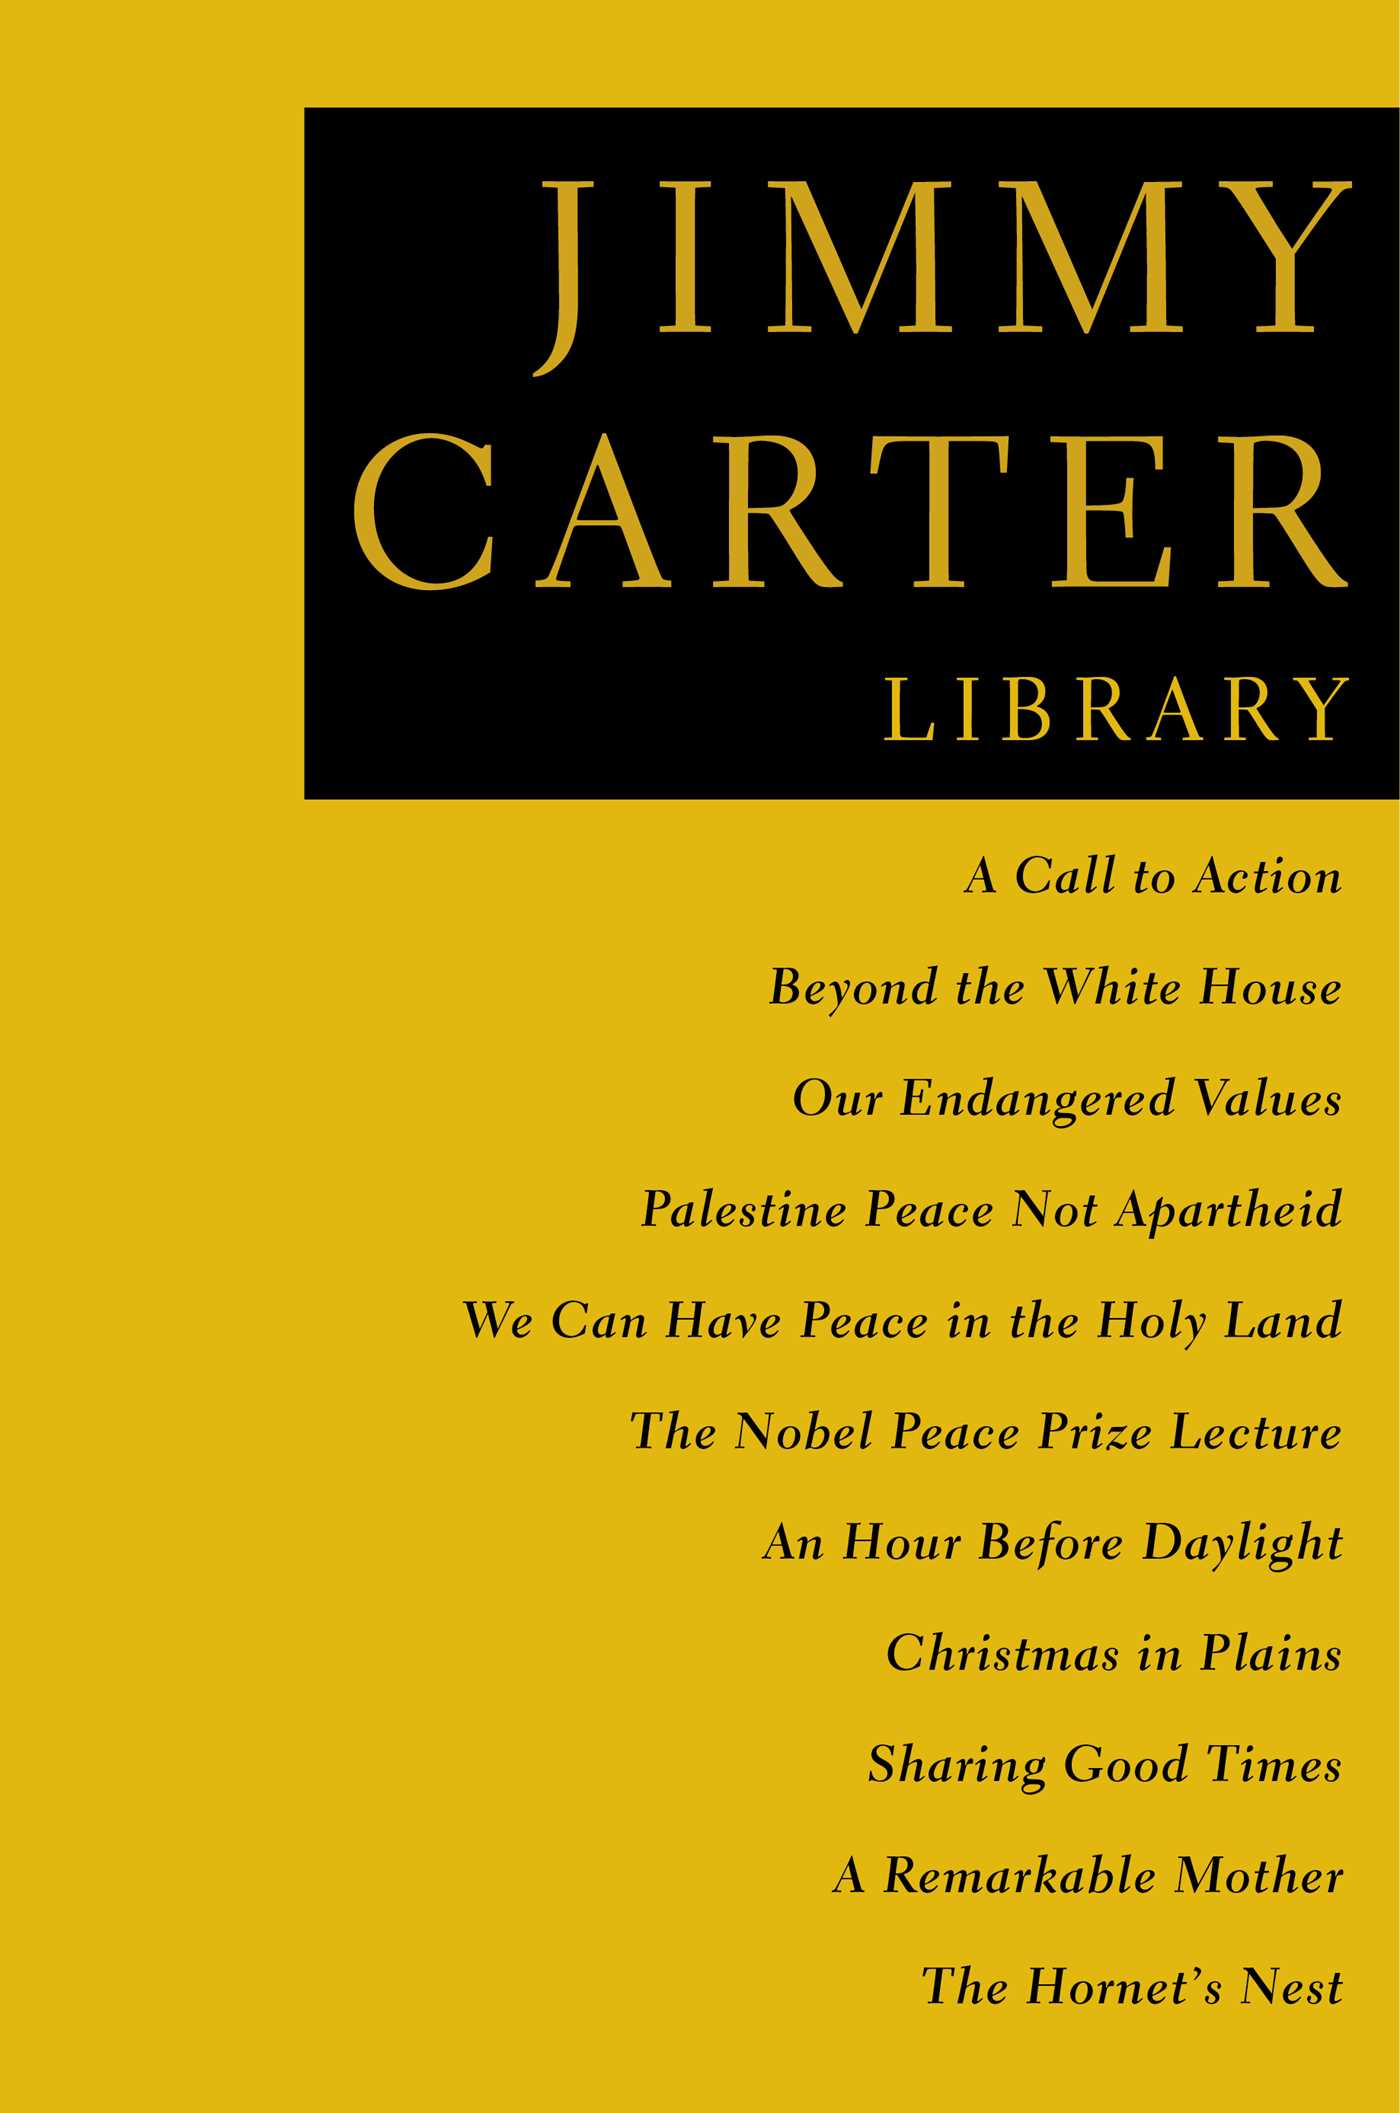 The jimmy carter library 9781476785271 hr